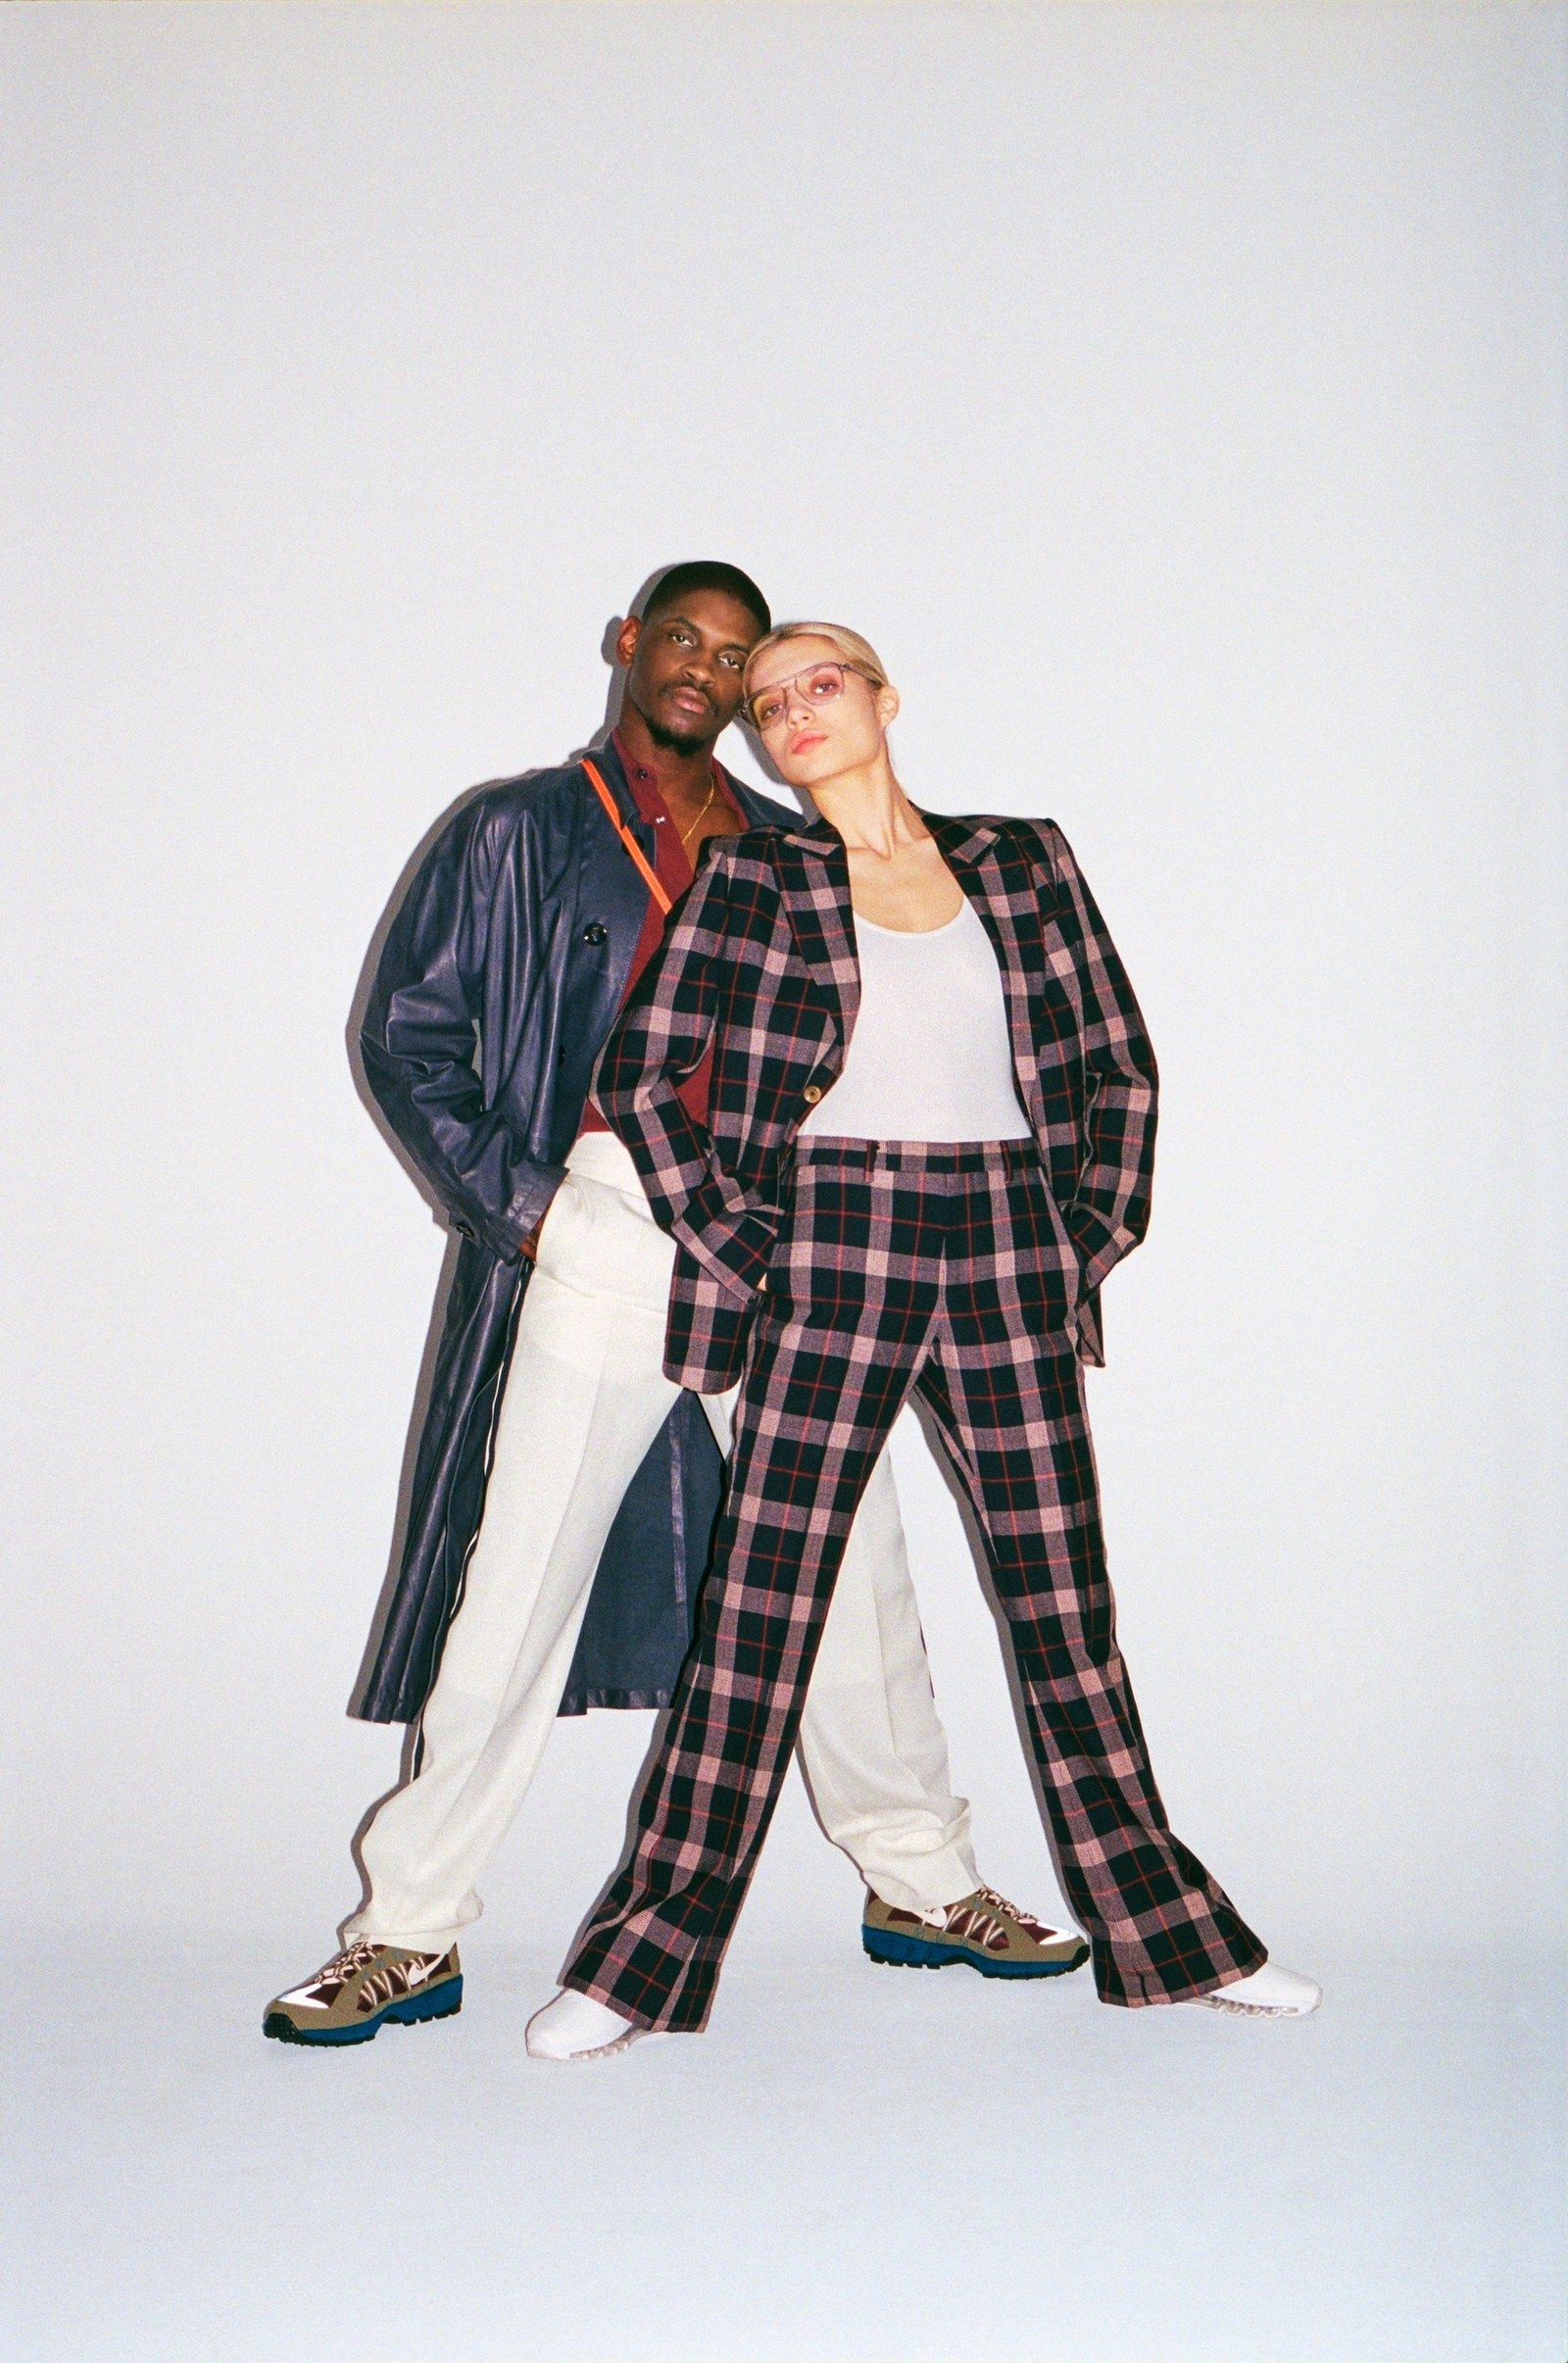 asap nast style - Google Search (With images) | White ...